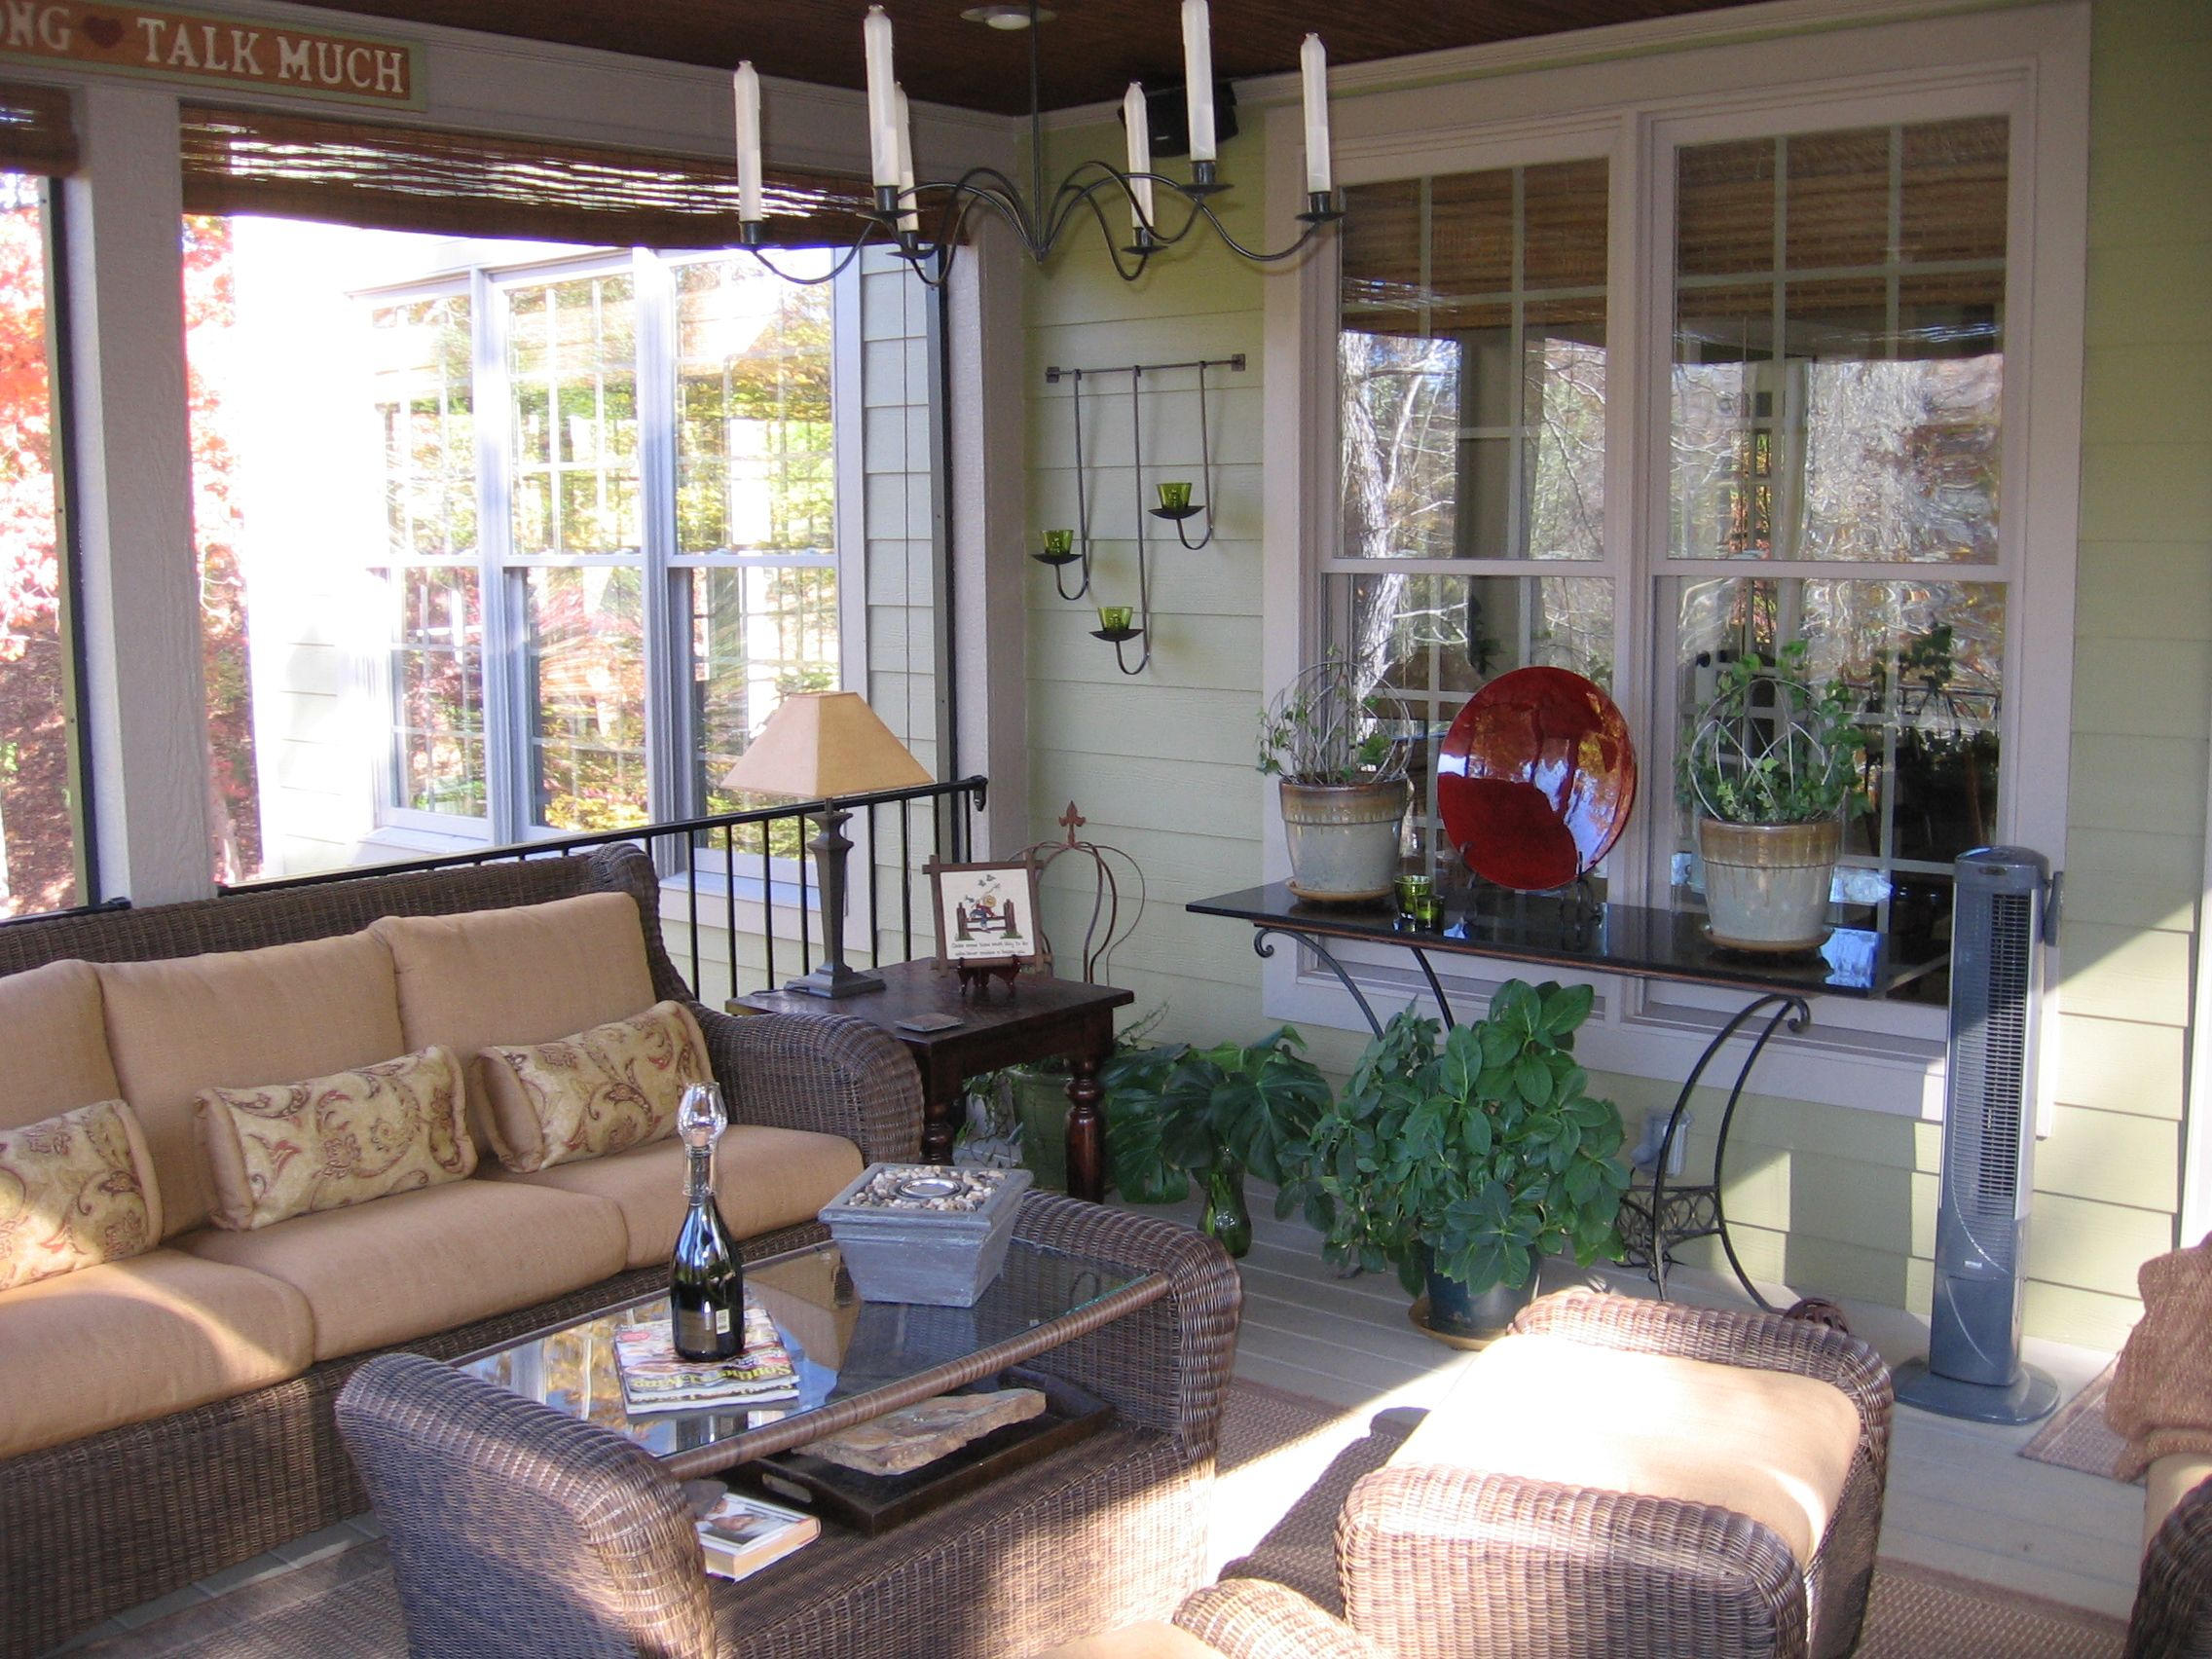 Decorating A Screened Porch Screened Porch Decorating Pinterest